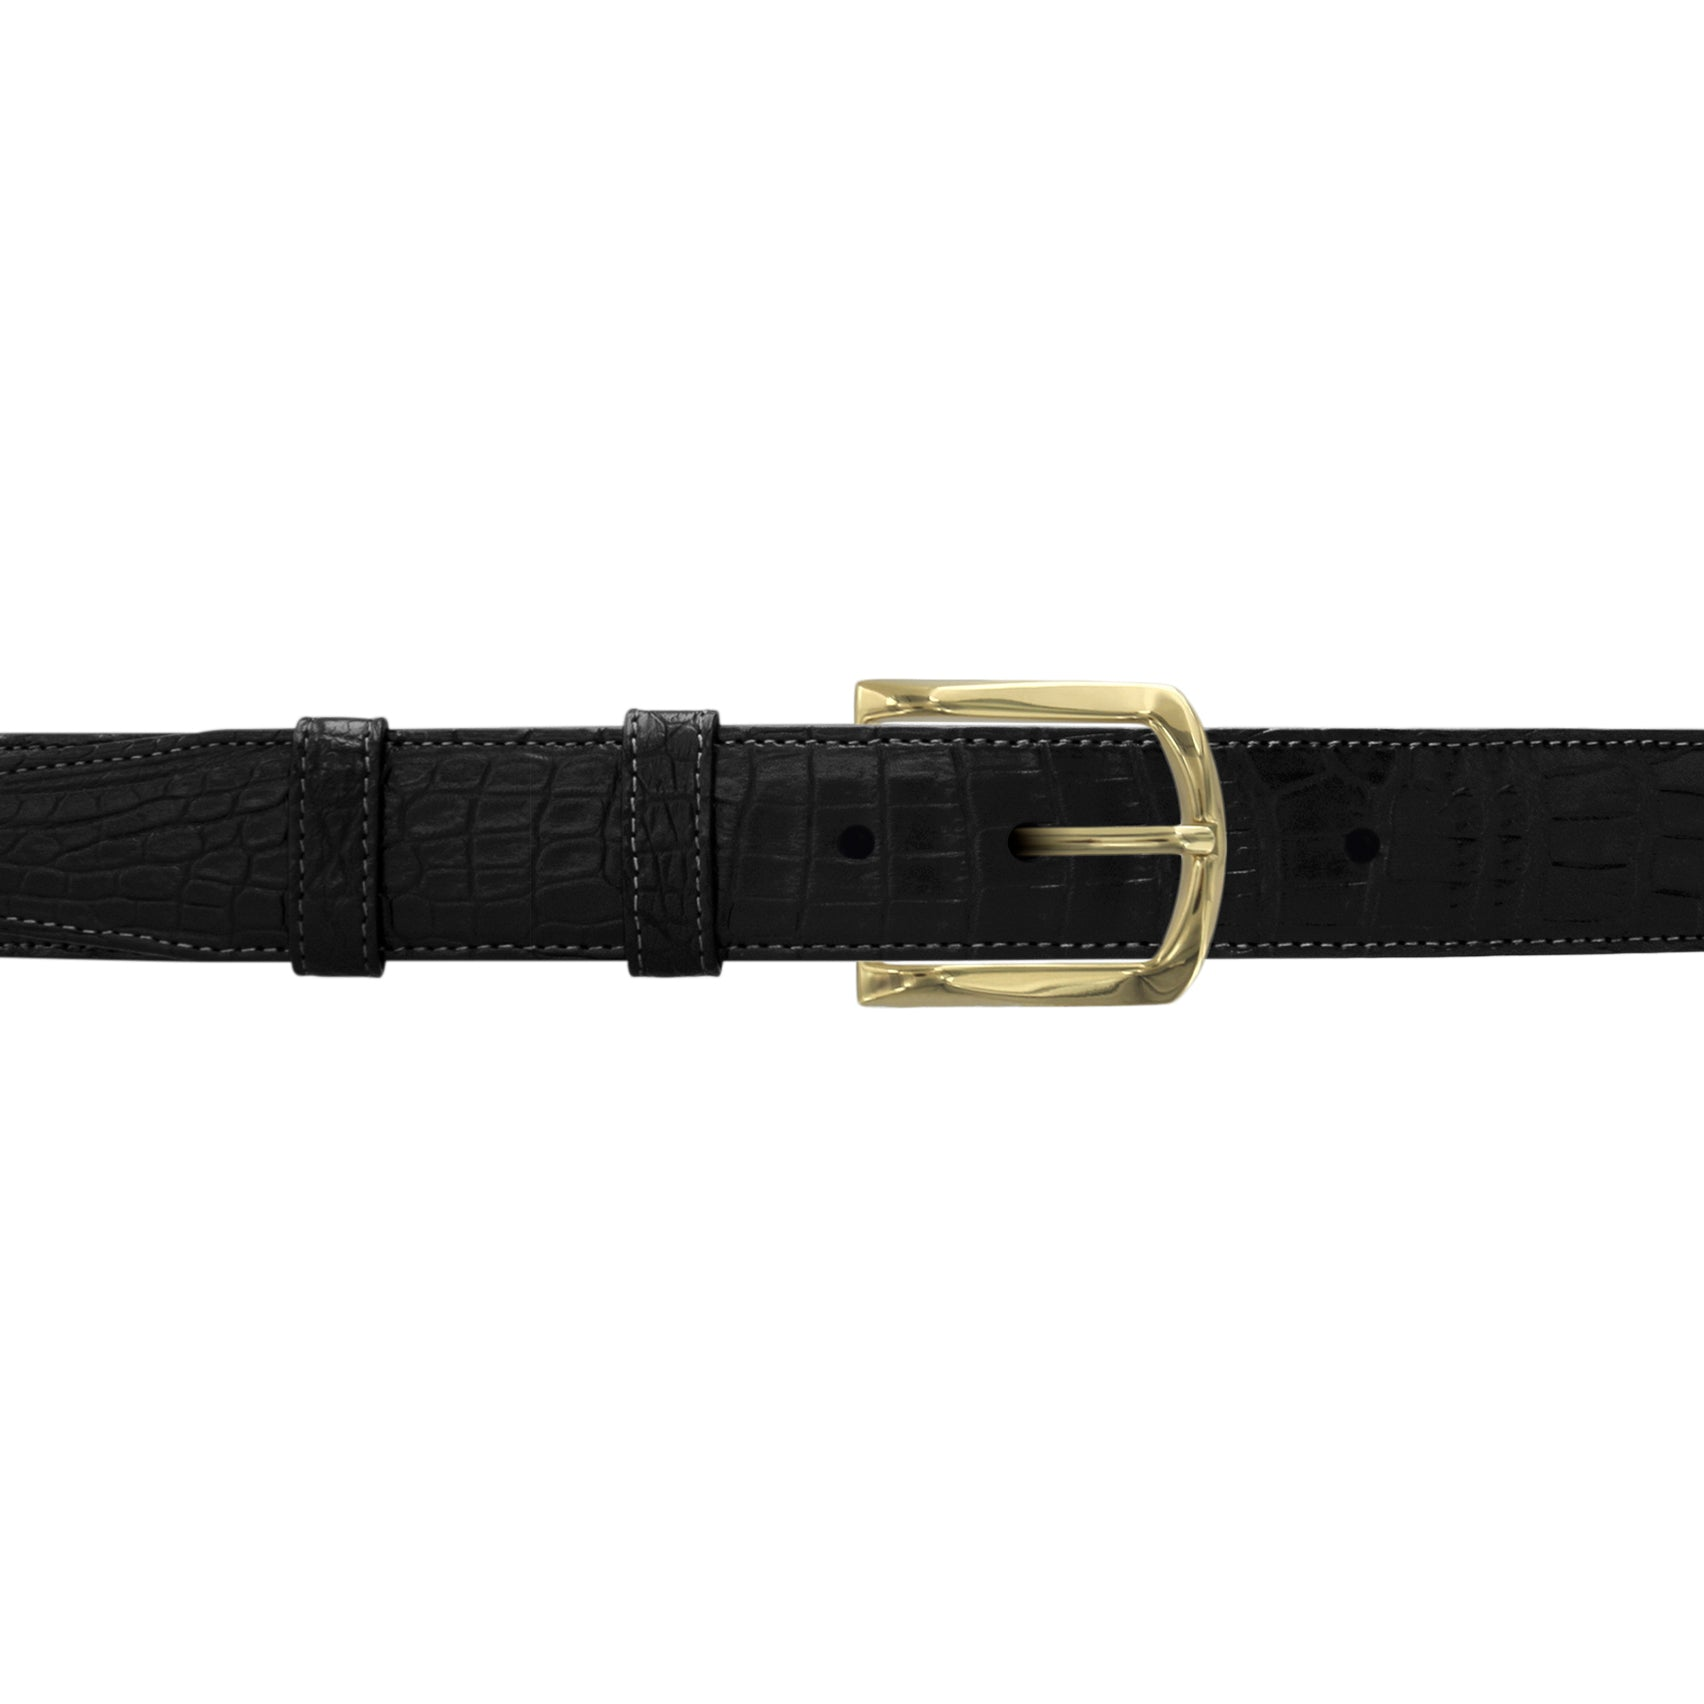 "1 1/4"" Raven Classic Belt with Sutton Dress Buckle in Brass"